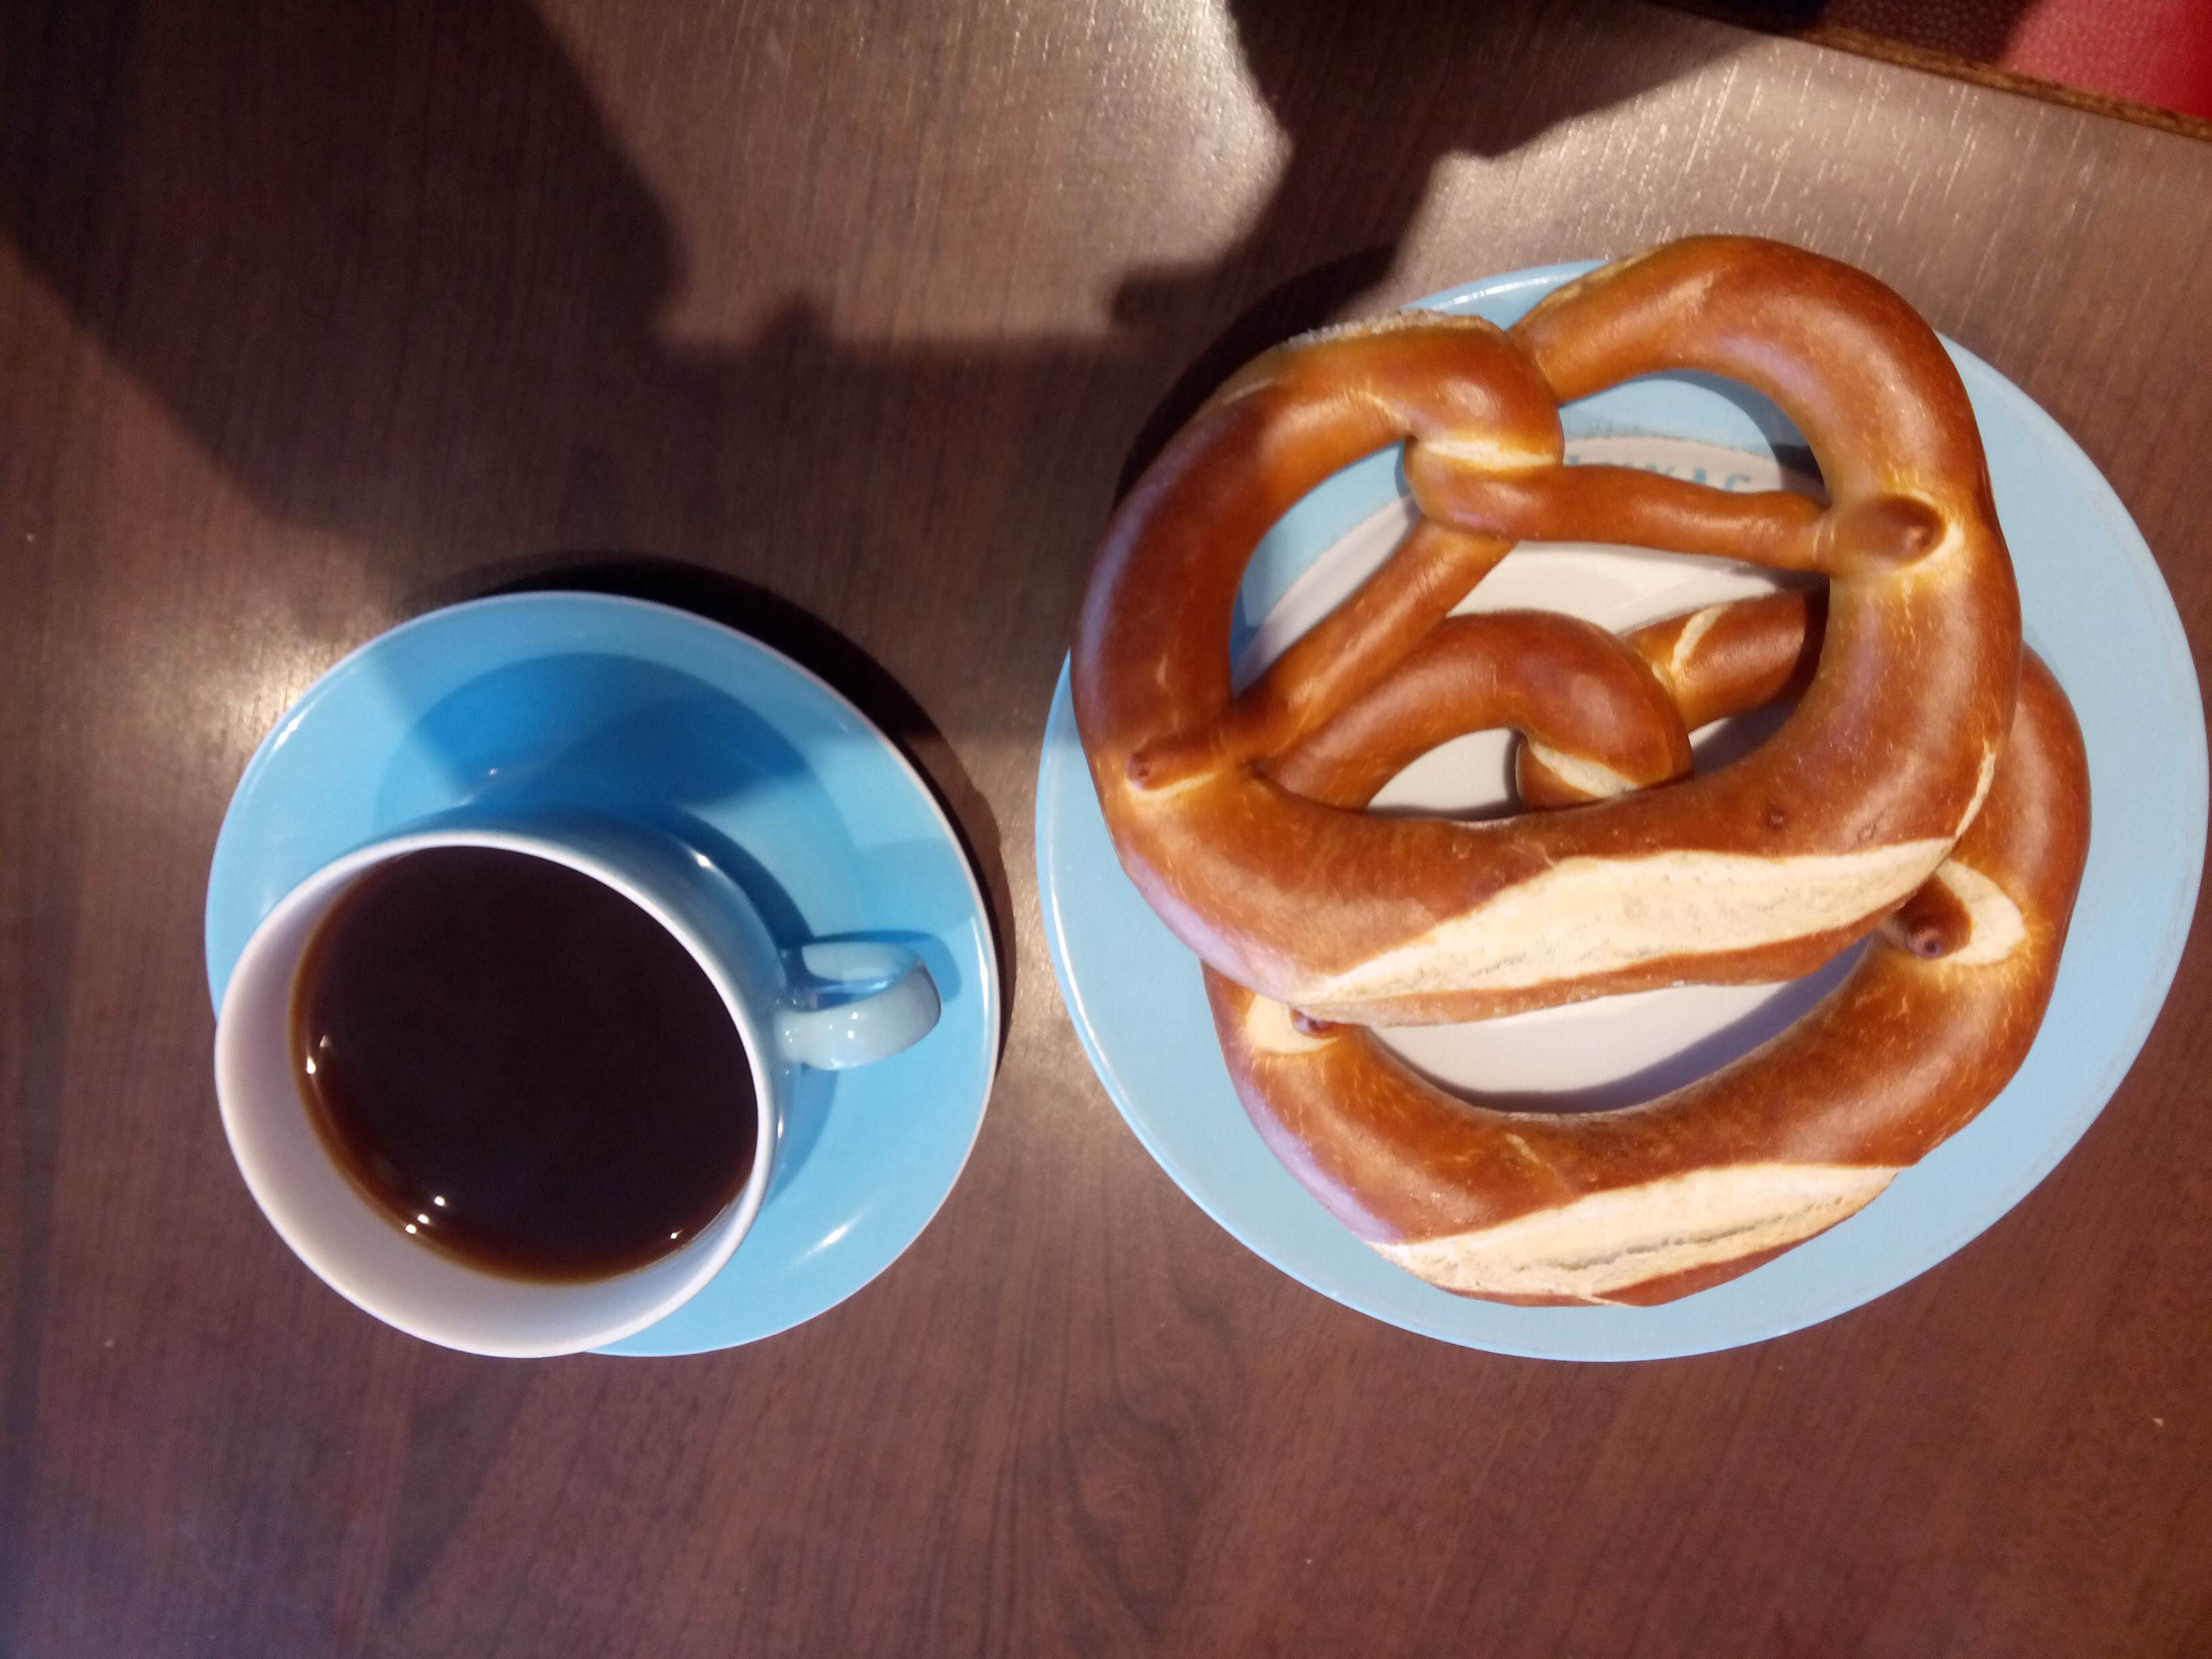 Coffee in a blue cup, and two pretzels on a plate